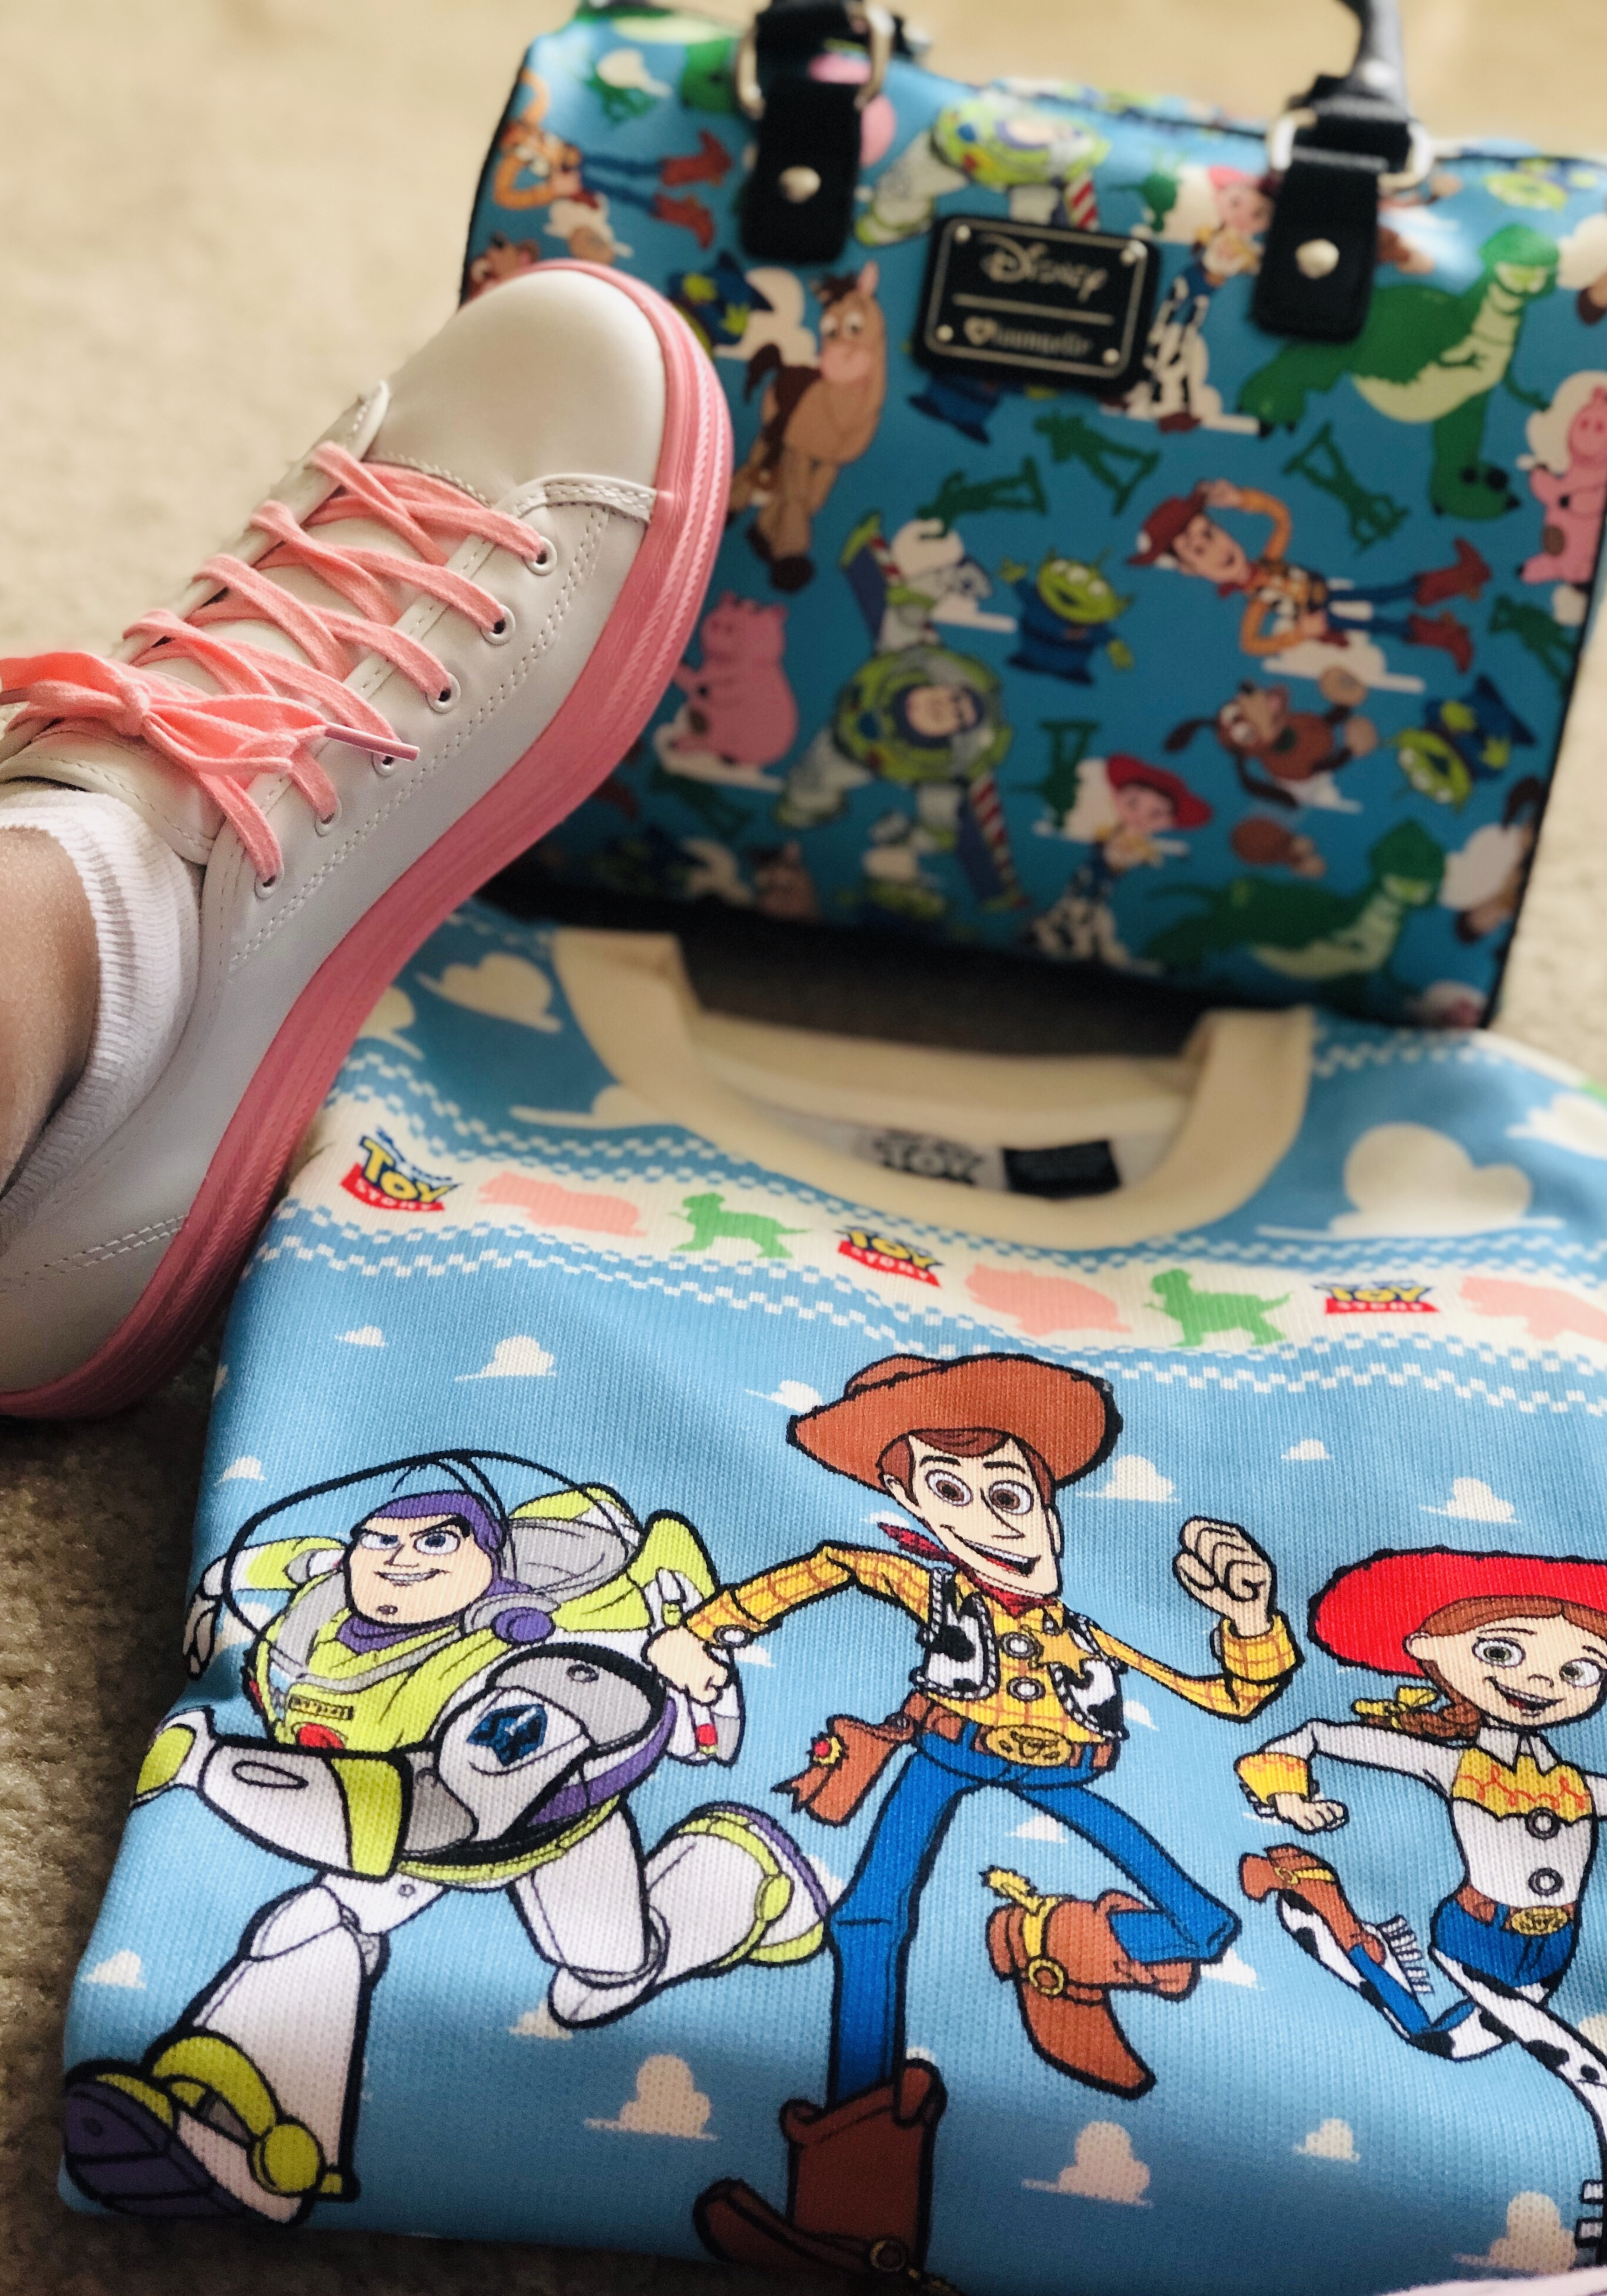 Fun Toy Story Sweater and Purse & A Press Trip To San Francisco